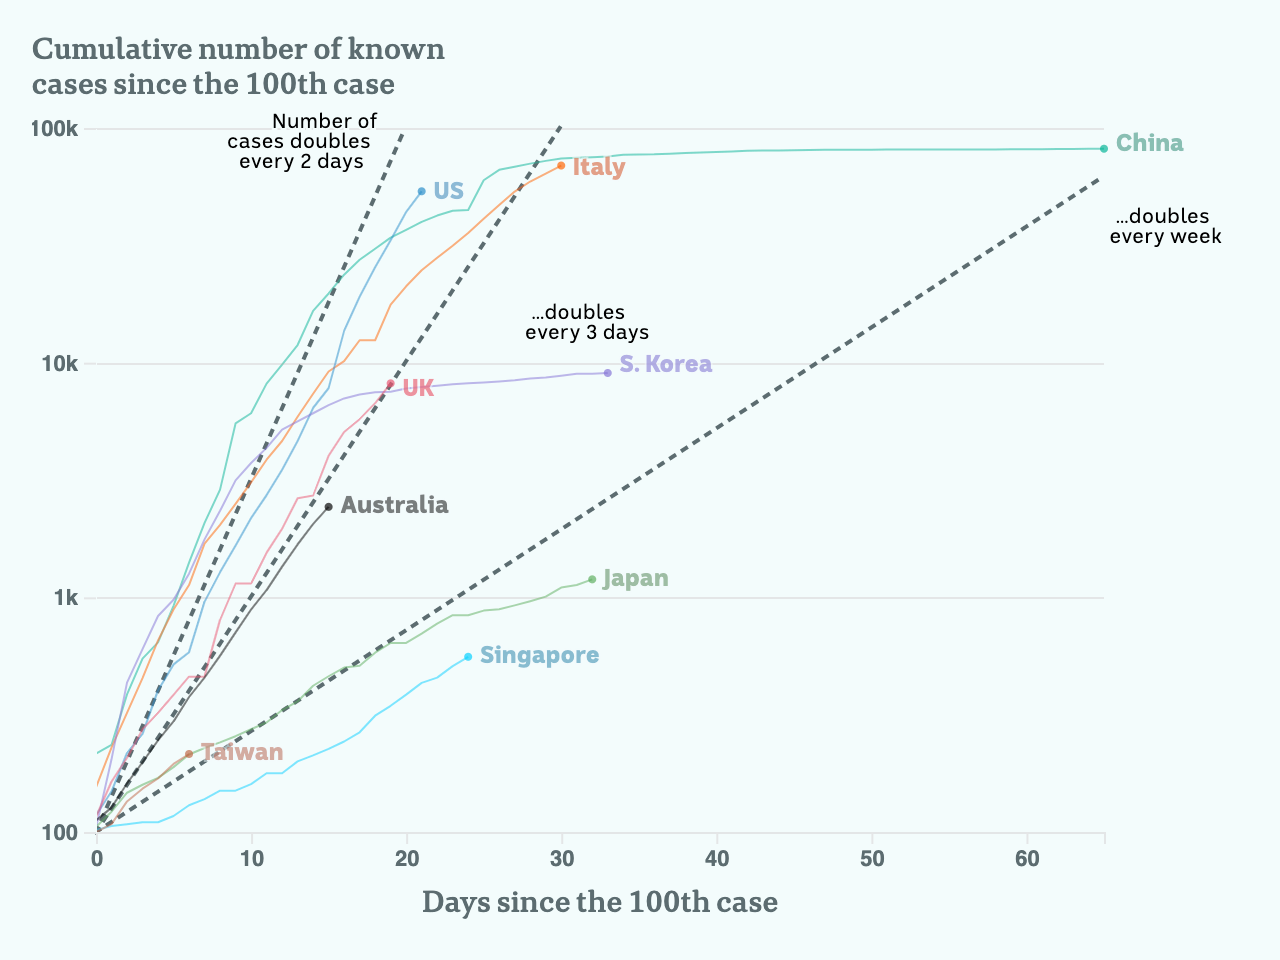 Charted trend lines where cases double every two days, every three days and every week.